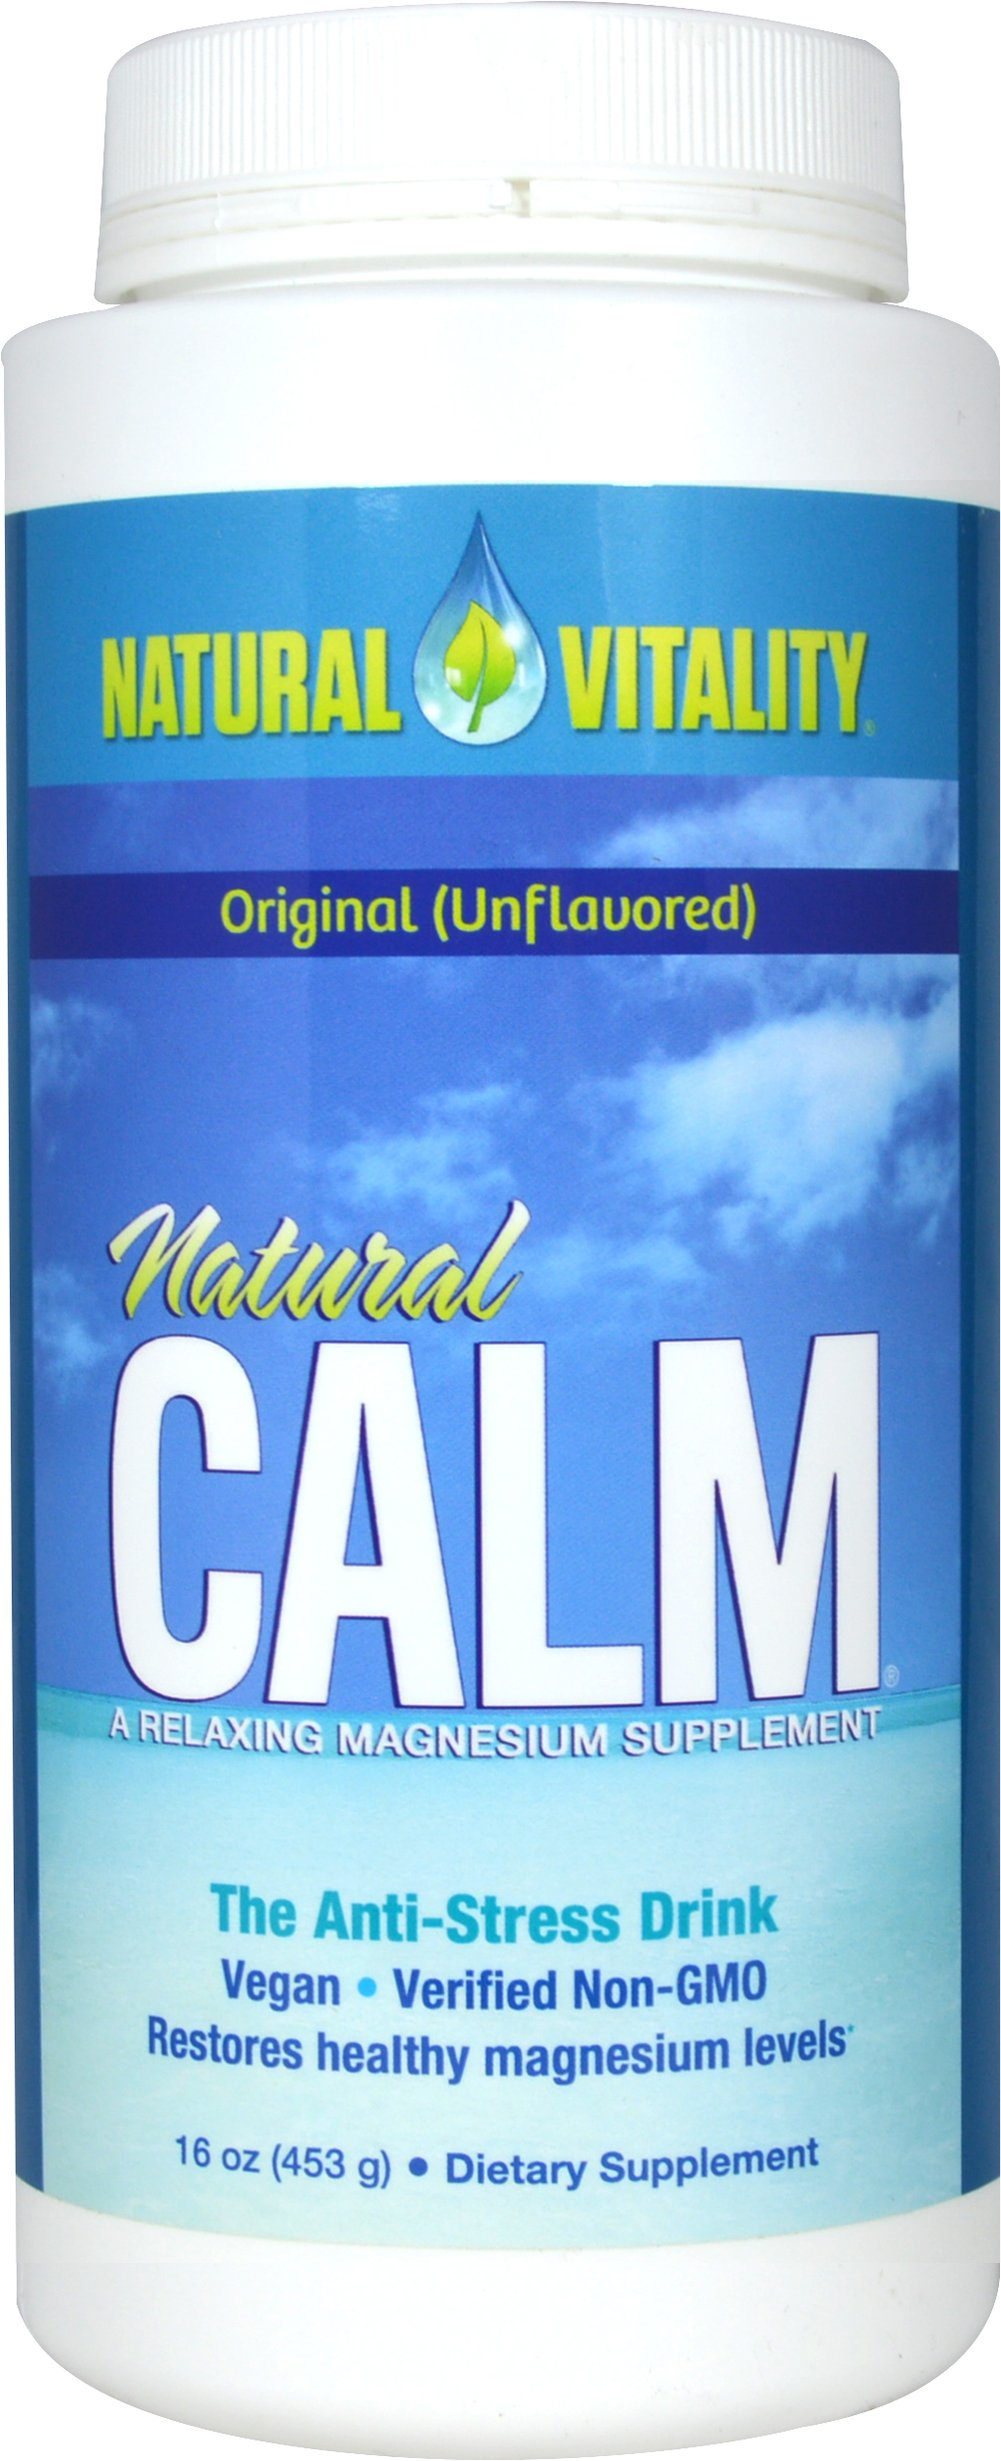 Natural Calm Original  <B>From the Manufacturer's Label:</B> <P>Award-winning Natural Calm is the best-selling ionic magnesium supplement in the natural products market.</P>  16 oz Powder  $23.97